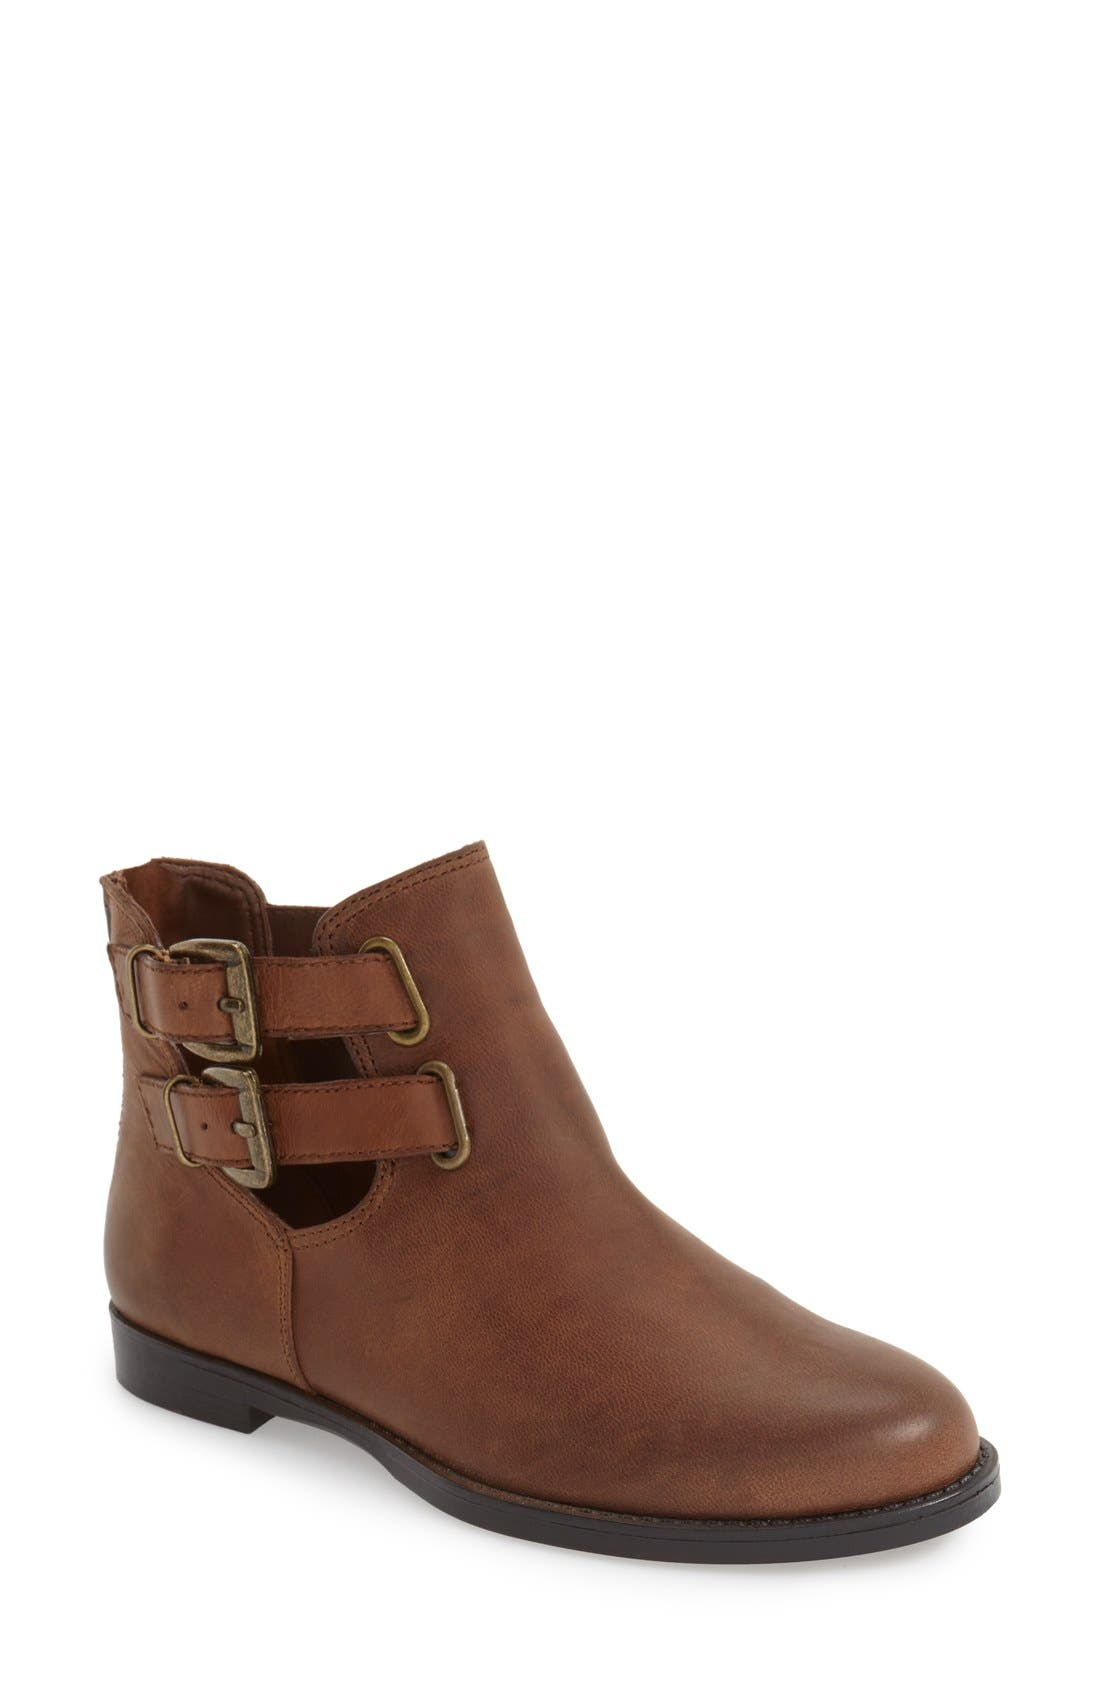 Alternate Image 1 Selected - Bella Vita 'Ramona' Double Buckle Bootie (Women)